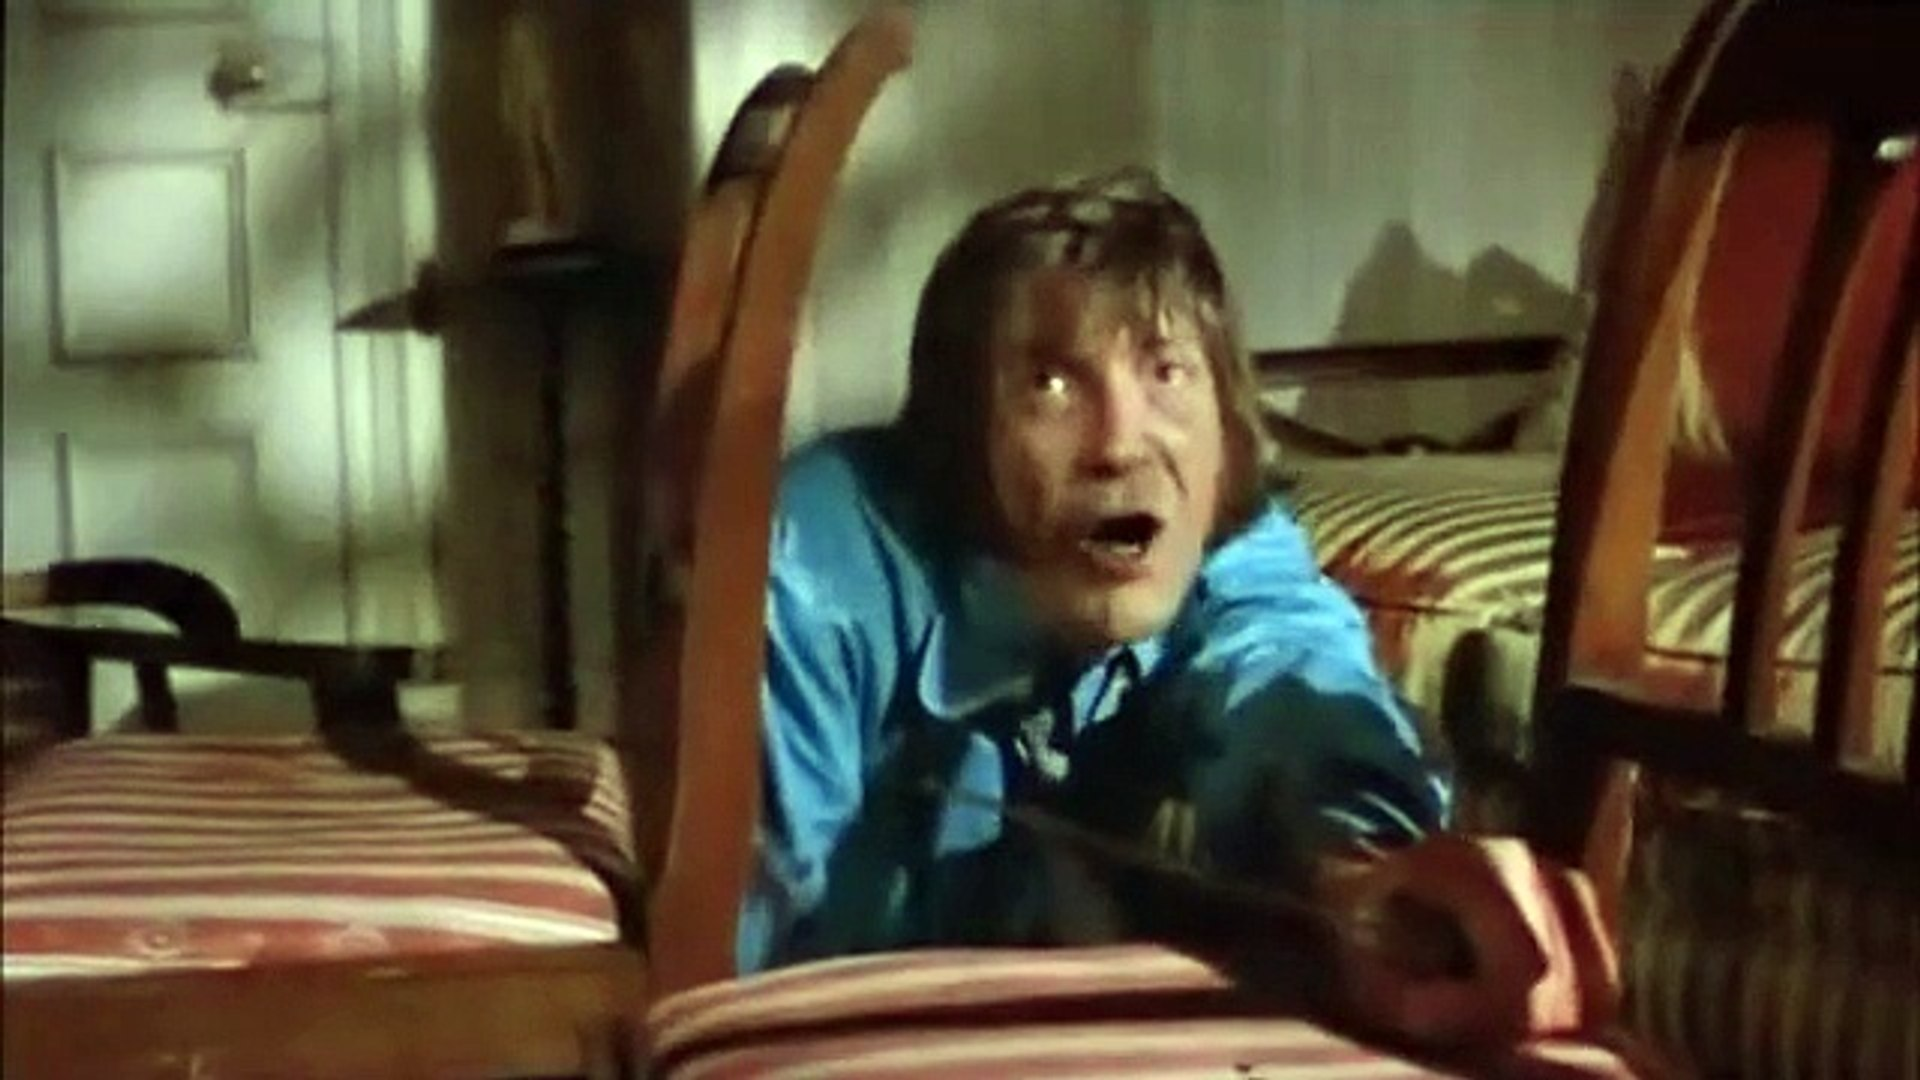 From Beyond the Grave Part 1 of 2 Starring Peter Cushing